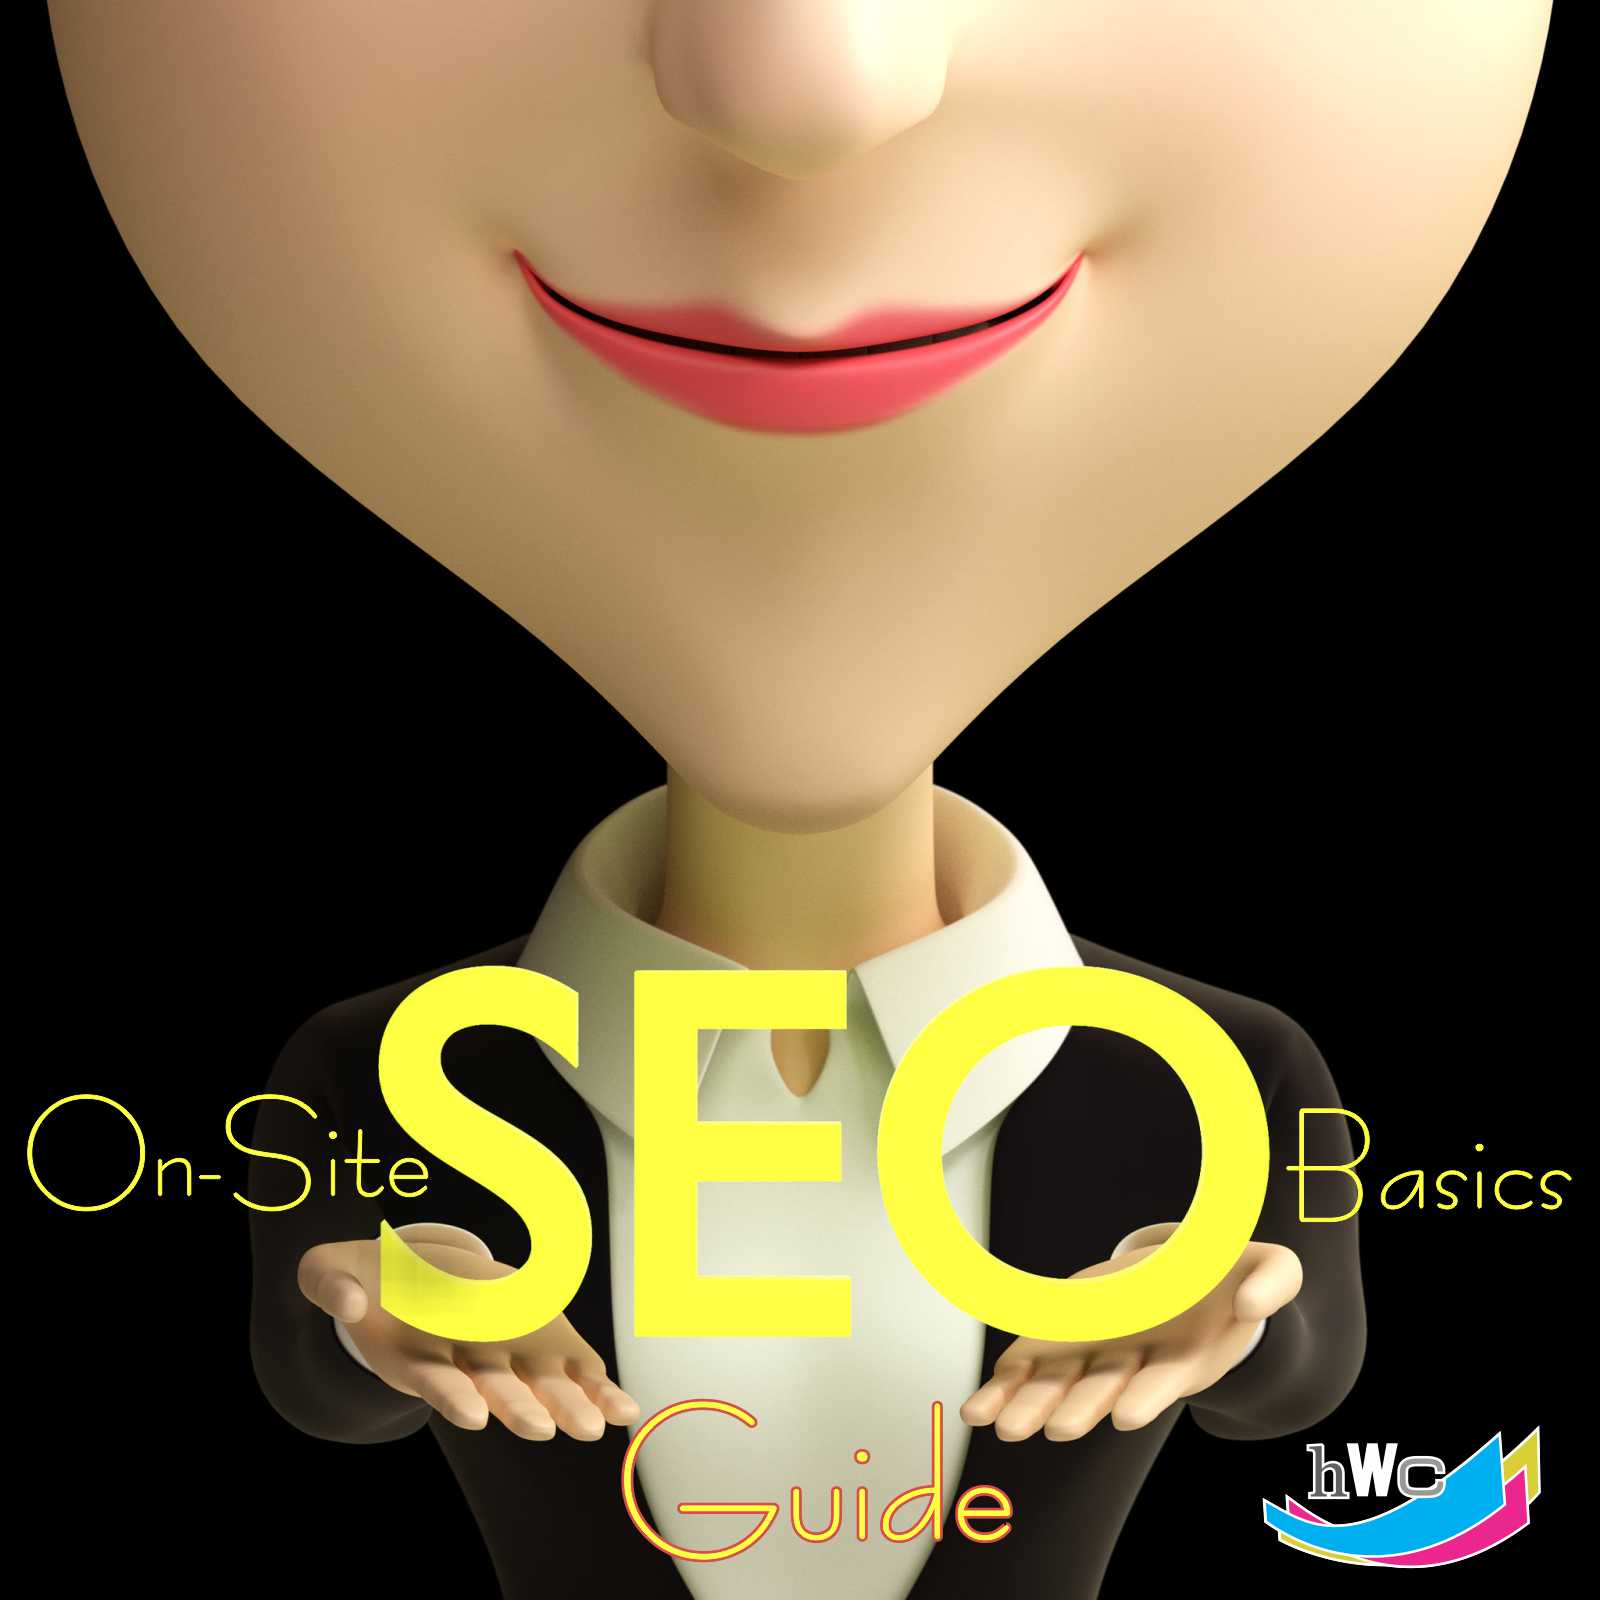 on-site-seo-basics-guide